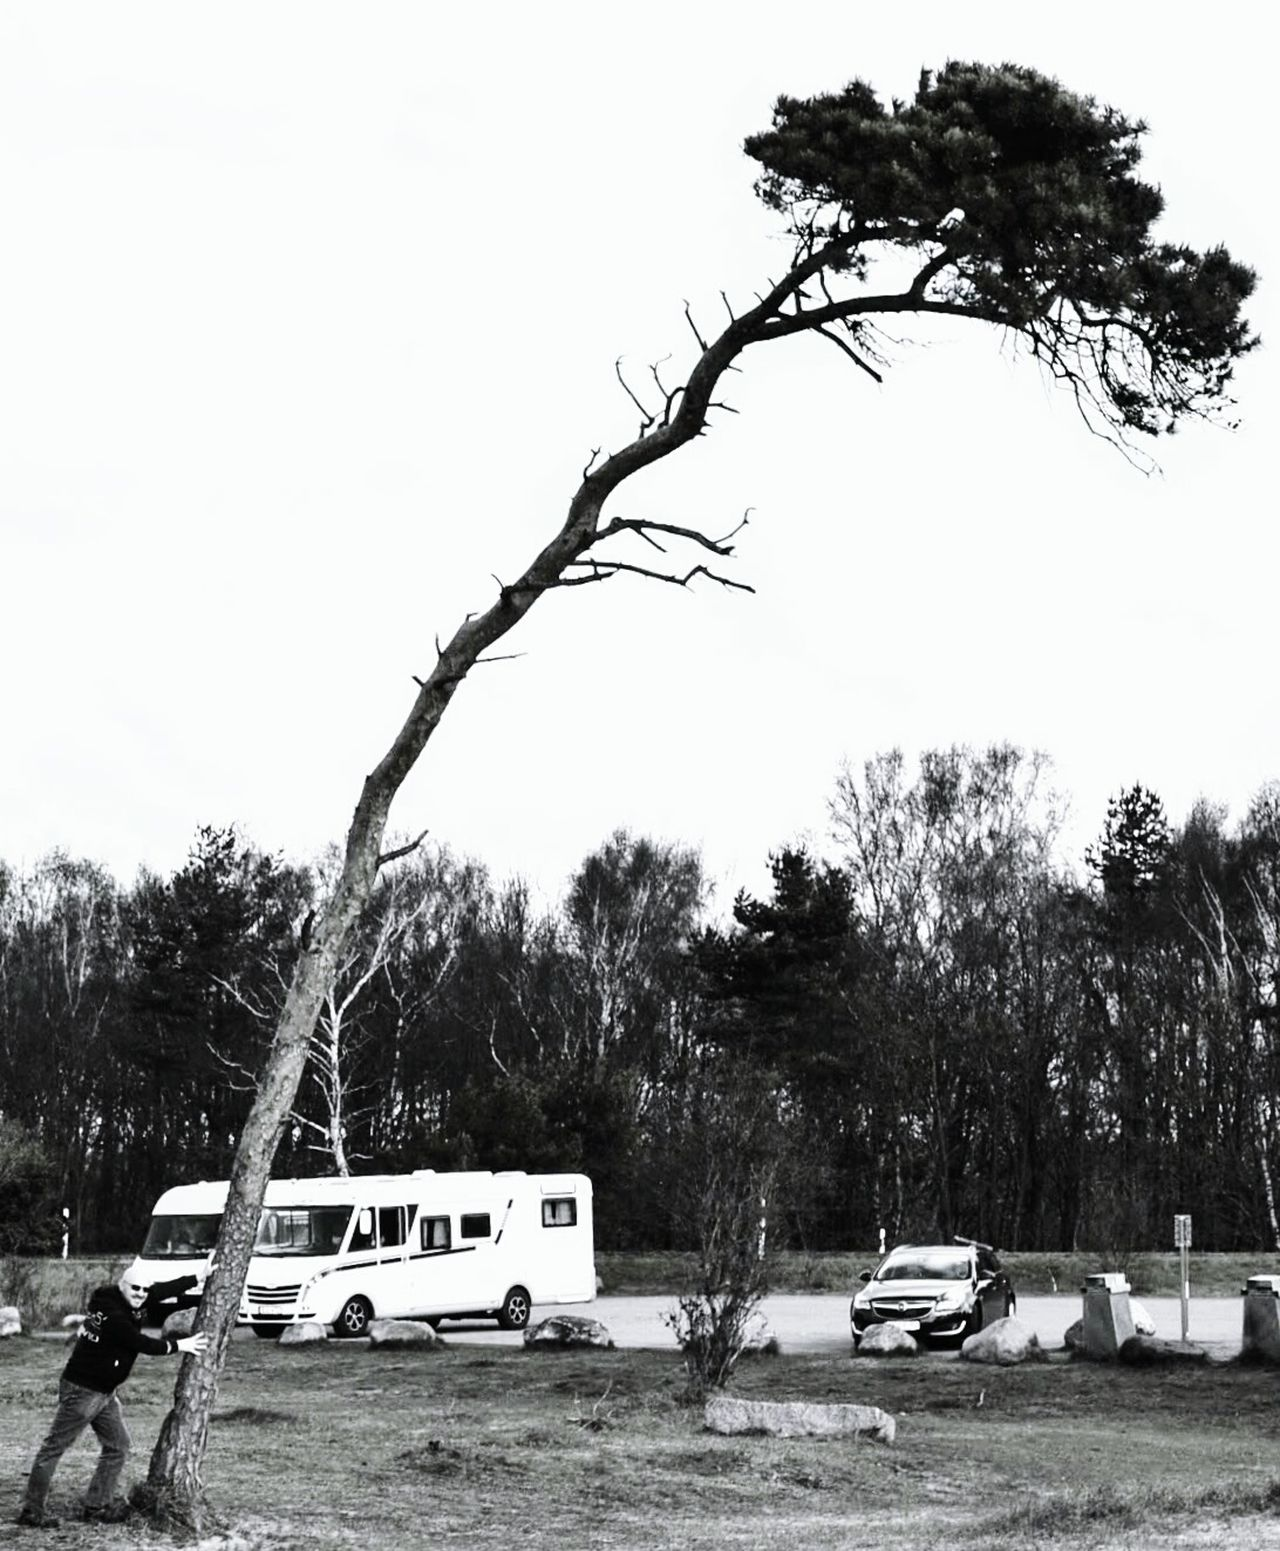 Tree Car Transportation Land Vehicle Outdoors Sky Day No People Branch Water Nature The Great Outdoors - 2017 EyeEm Awards EyeEmNewHere The Street Photographer - 2017 EyeEm Awards Schweden Ystad Beach Ystad Ystadssaltsjöbad